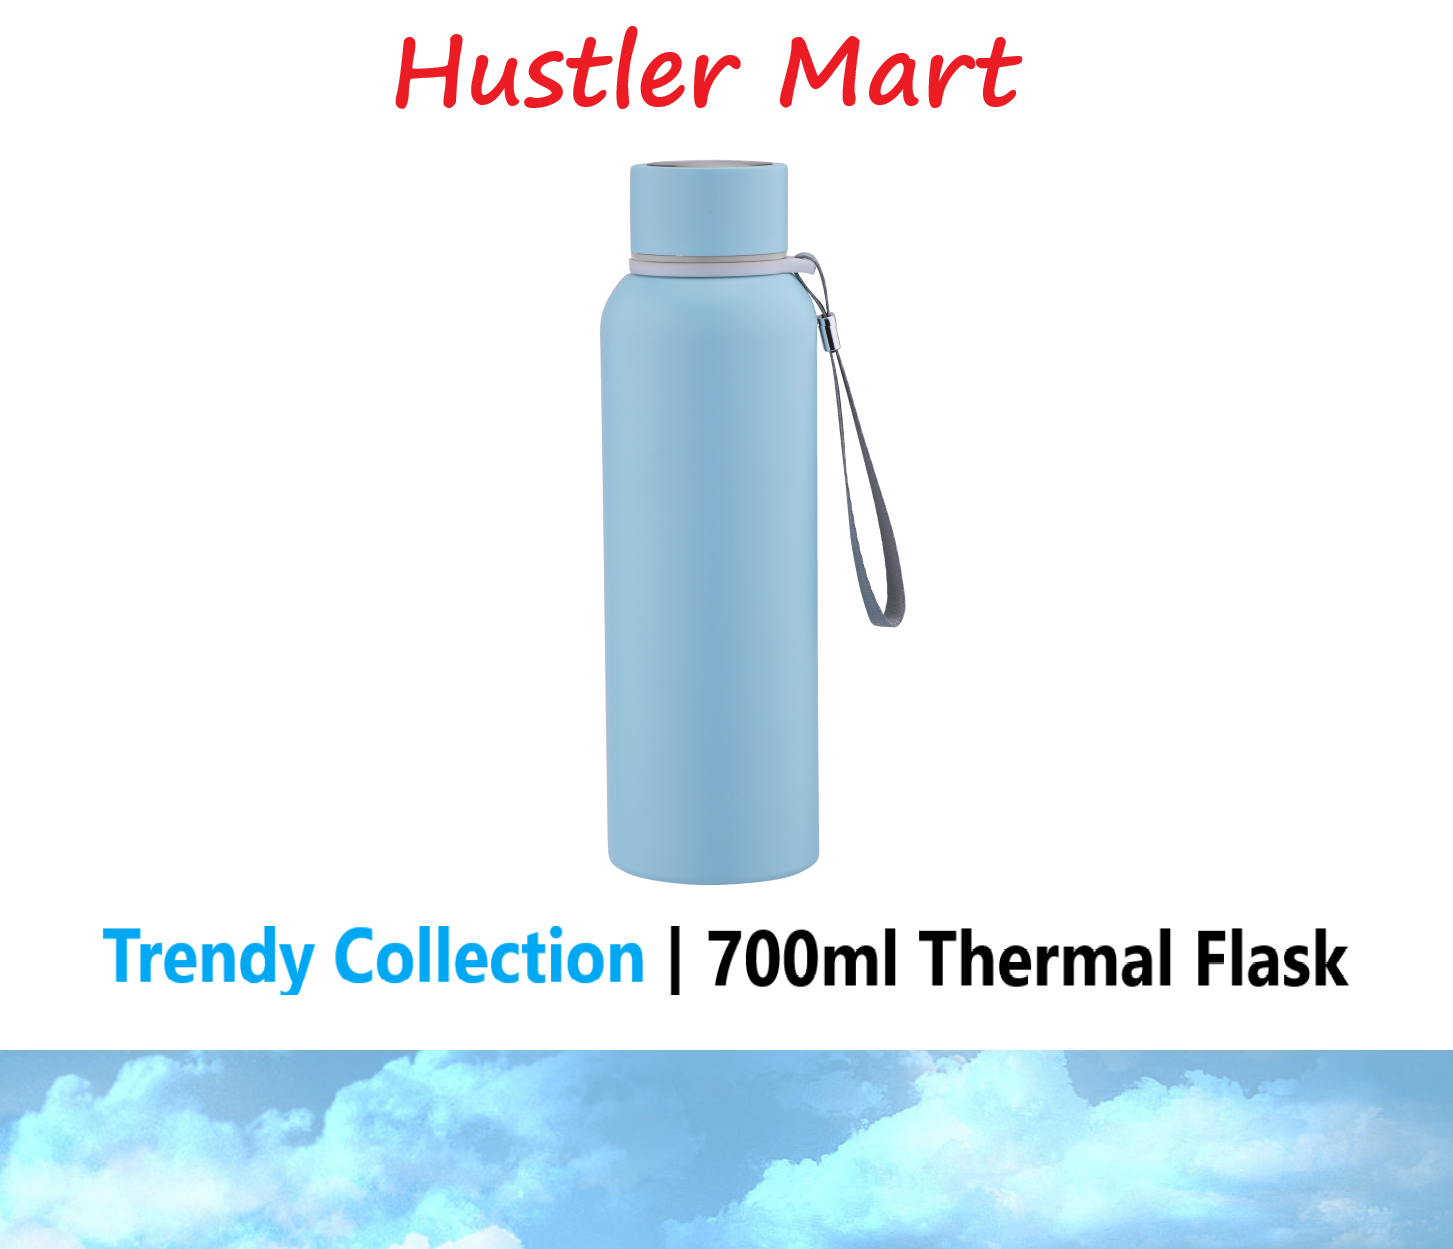 La Gourmet Trendy Collection 700ml Thermal Flask Tumbler